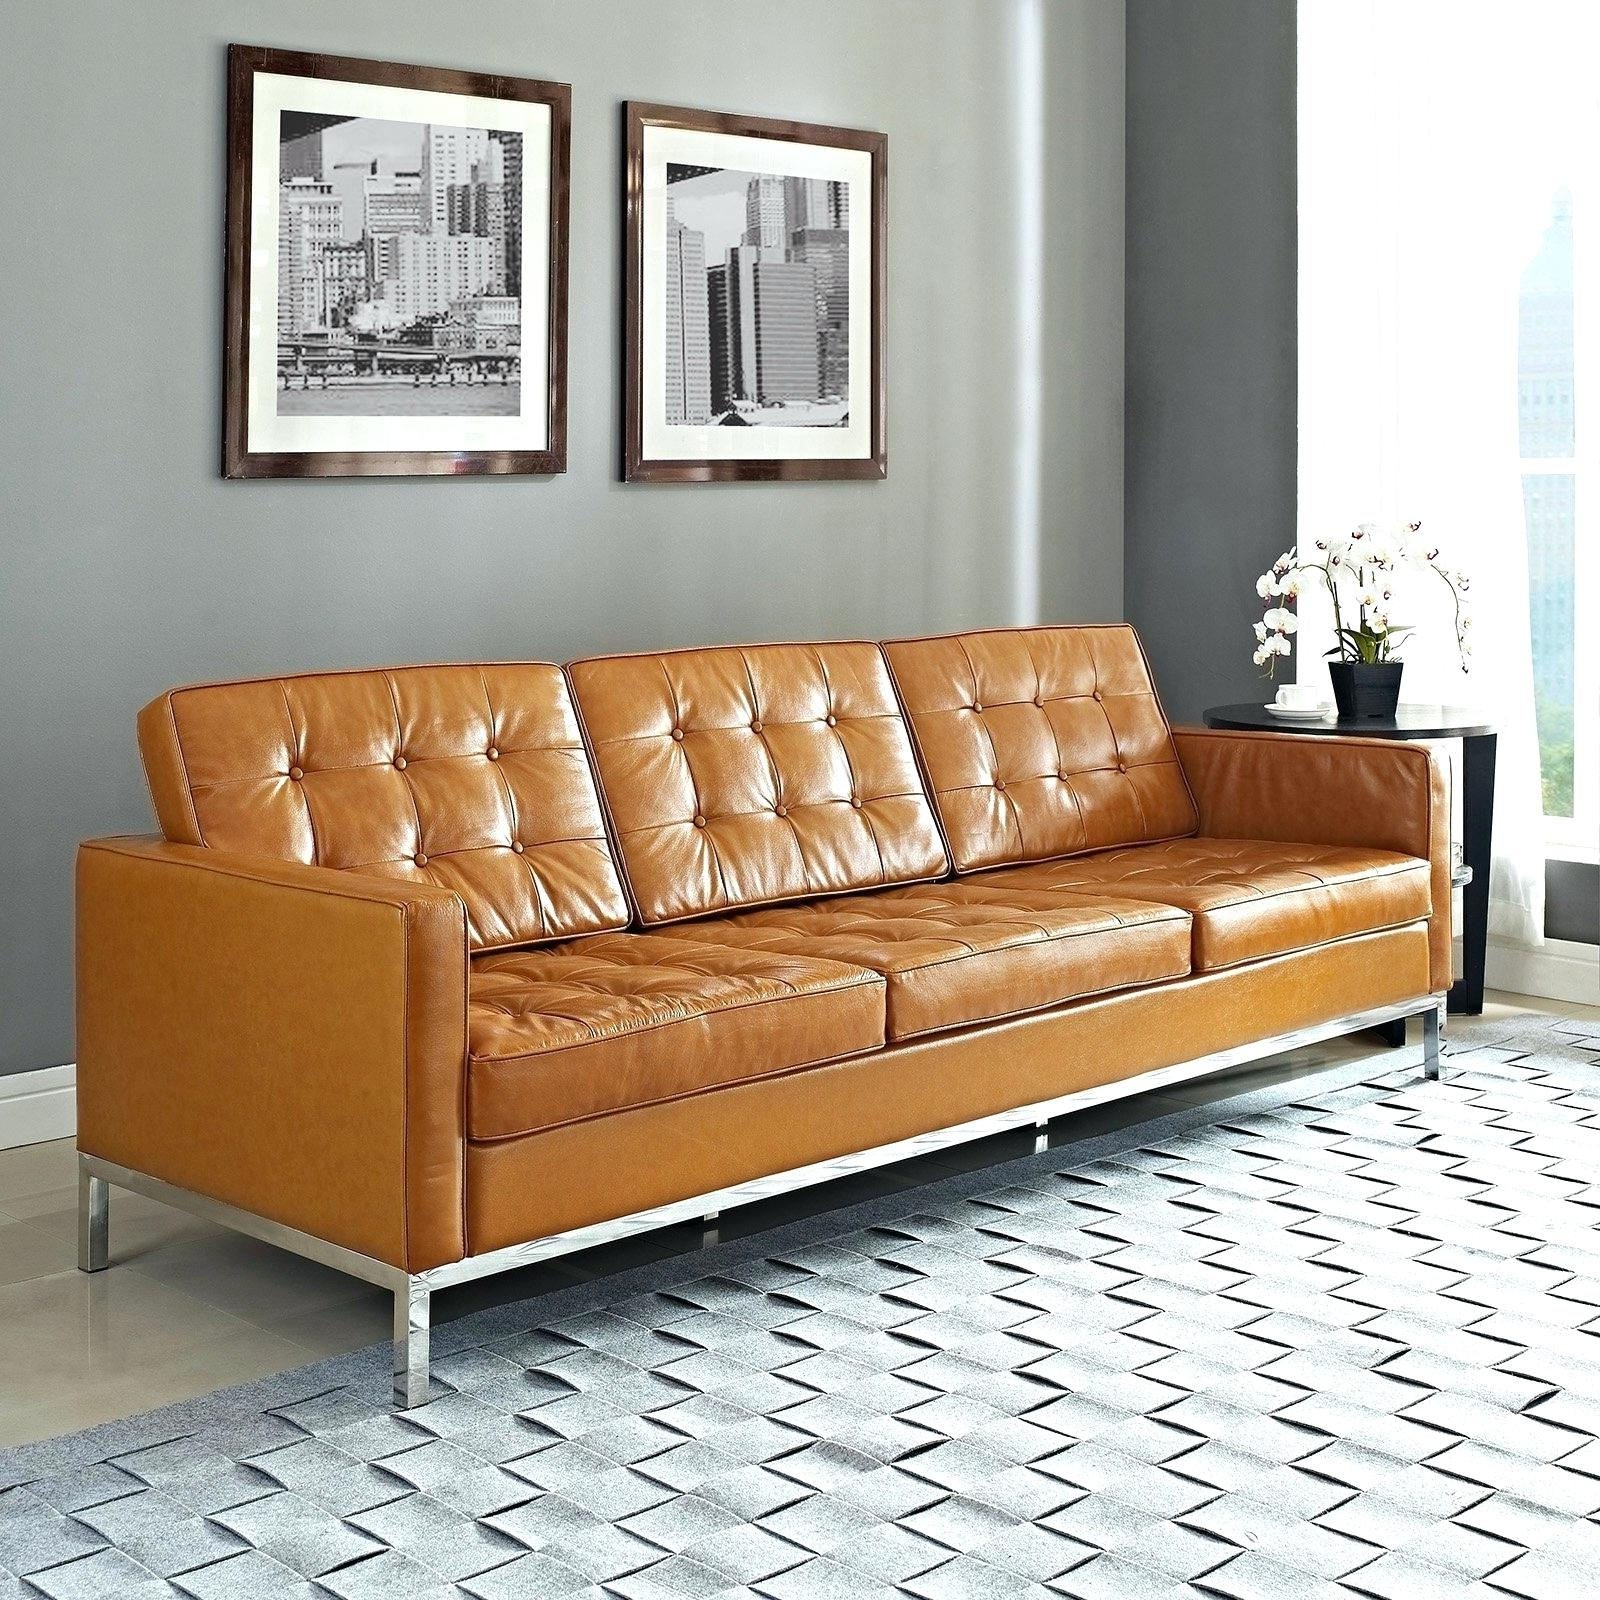 Full Image For Samuel Leather Sofa Light Tan Couch Living Room Inside Current Light Tan Leather Sofas (View 4 of 15)